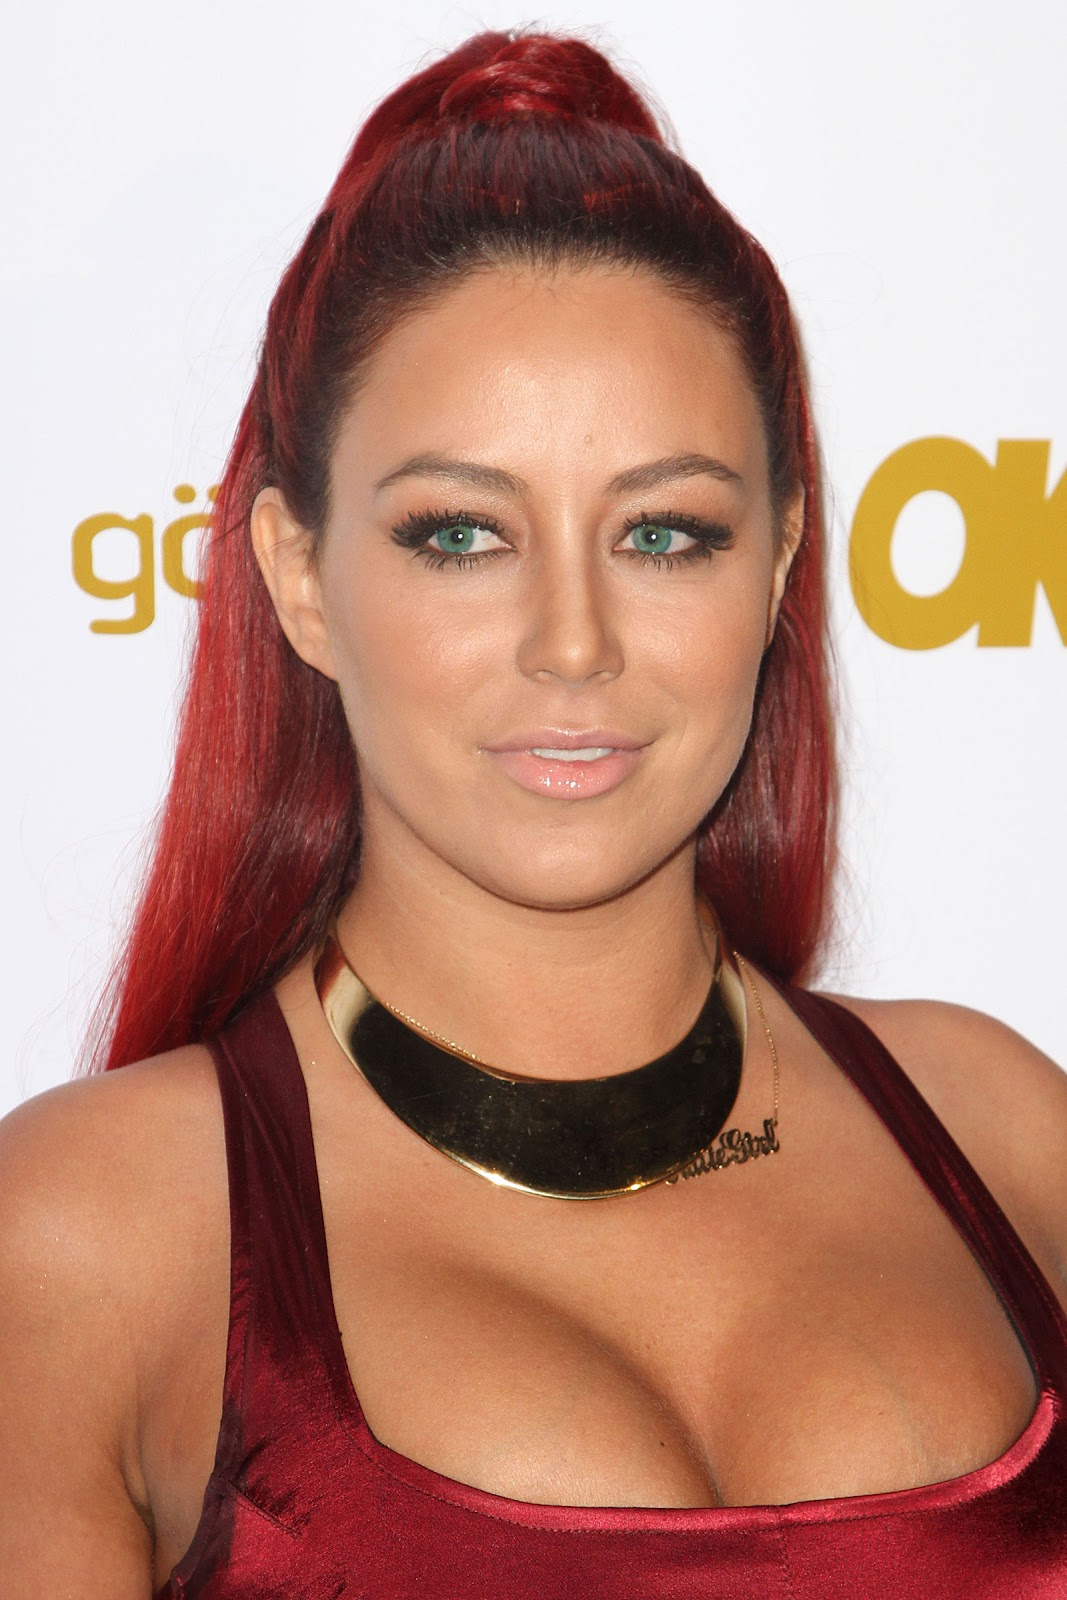 Hollywood Stars: Aubrey O'Day Profile, Pictures And Wallpapers Bradley Cooper